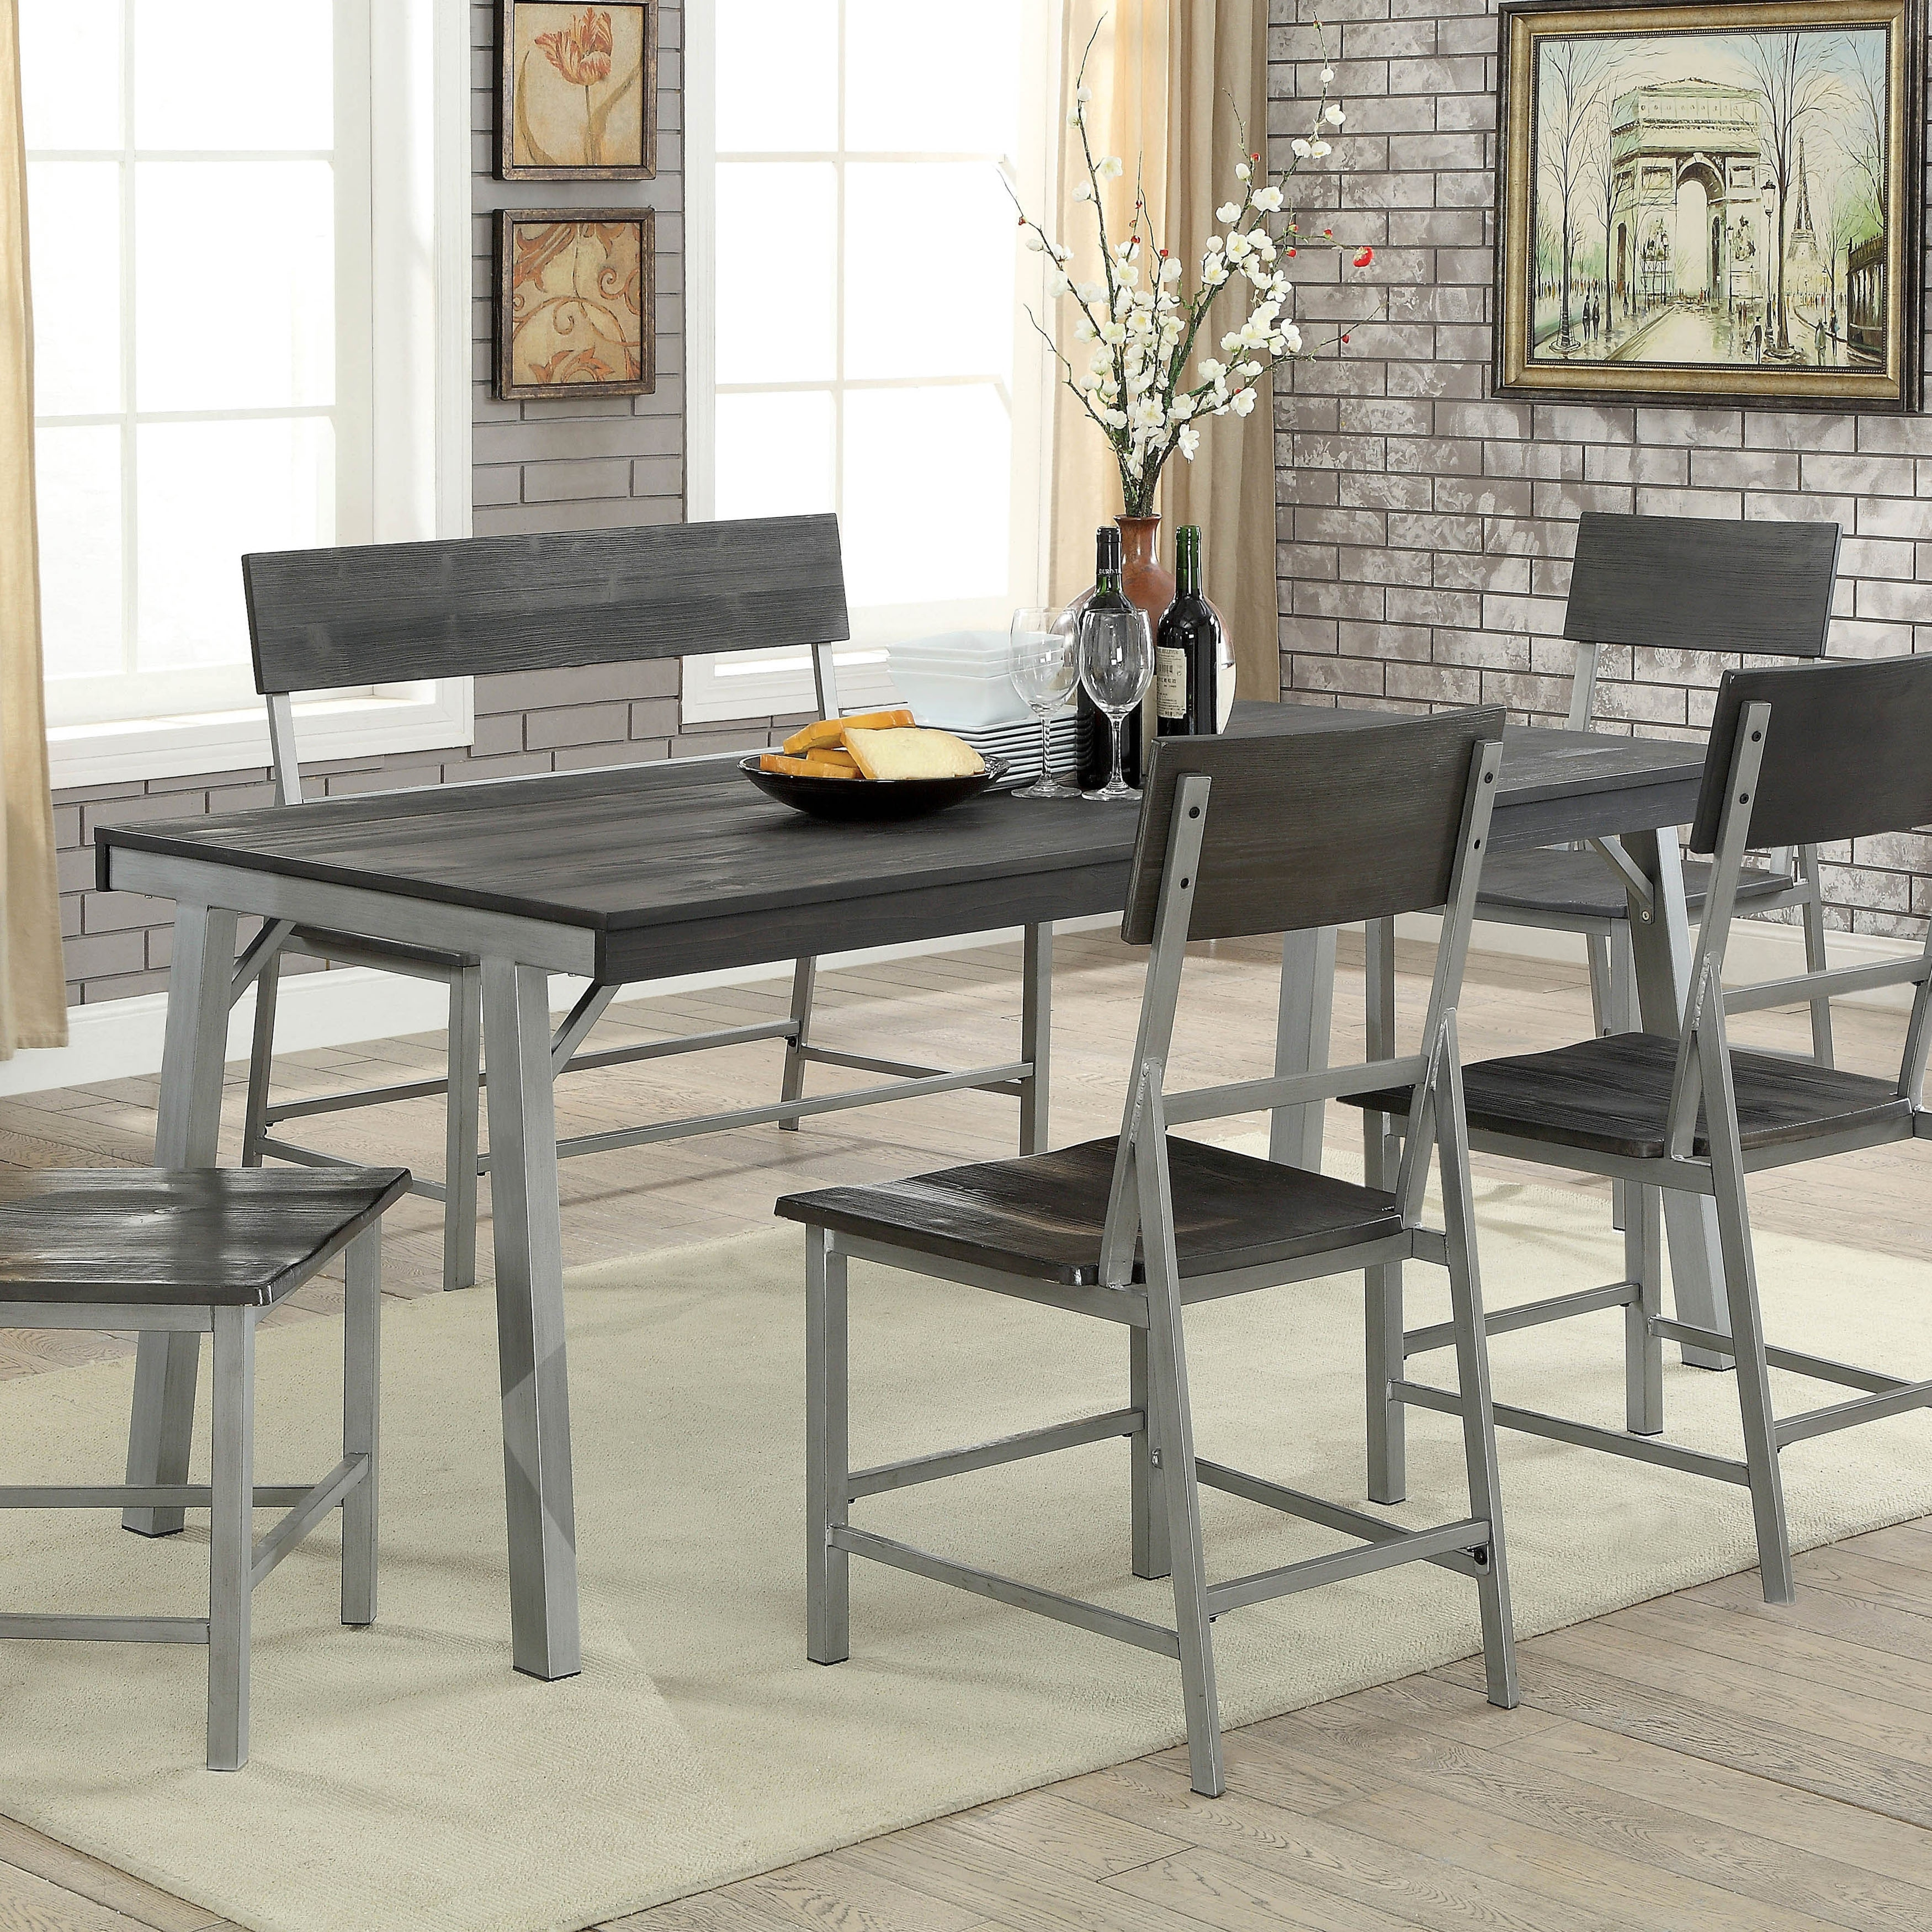 Furniture Of America Traw Industrial Grey 70 Inch Metal Dining Table On Sale Overstock 20879299